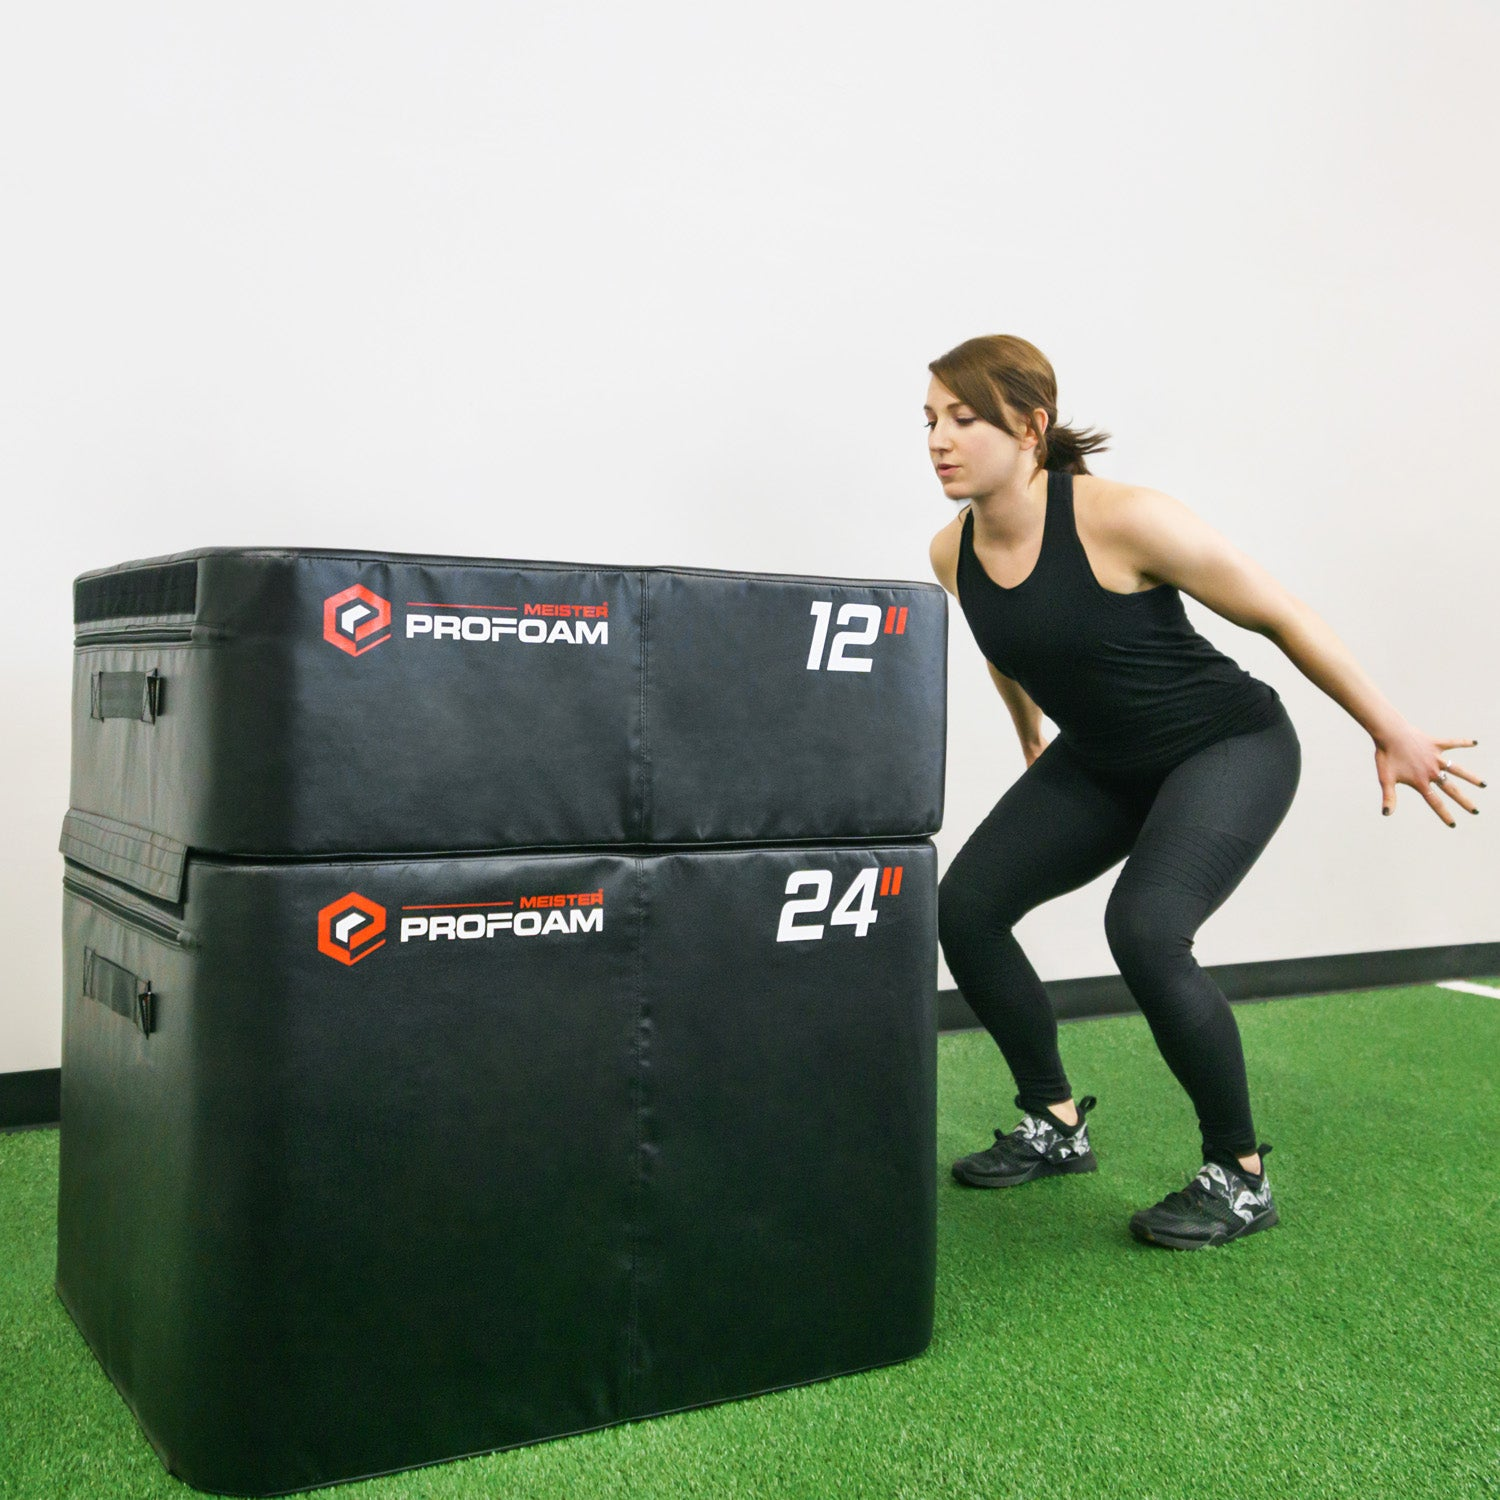 Meister PROFOAM™ Plyo Box for Professional Gyms 5 Box Set